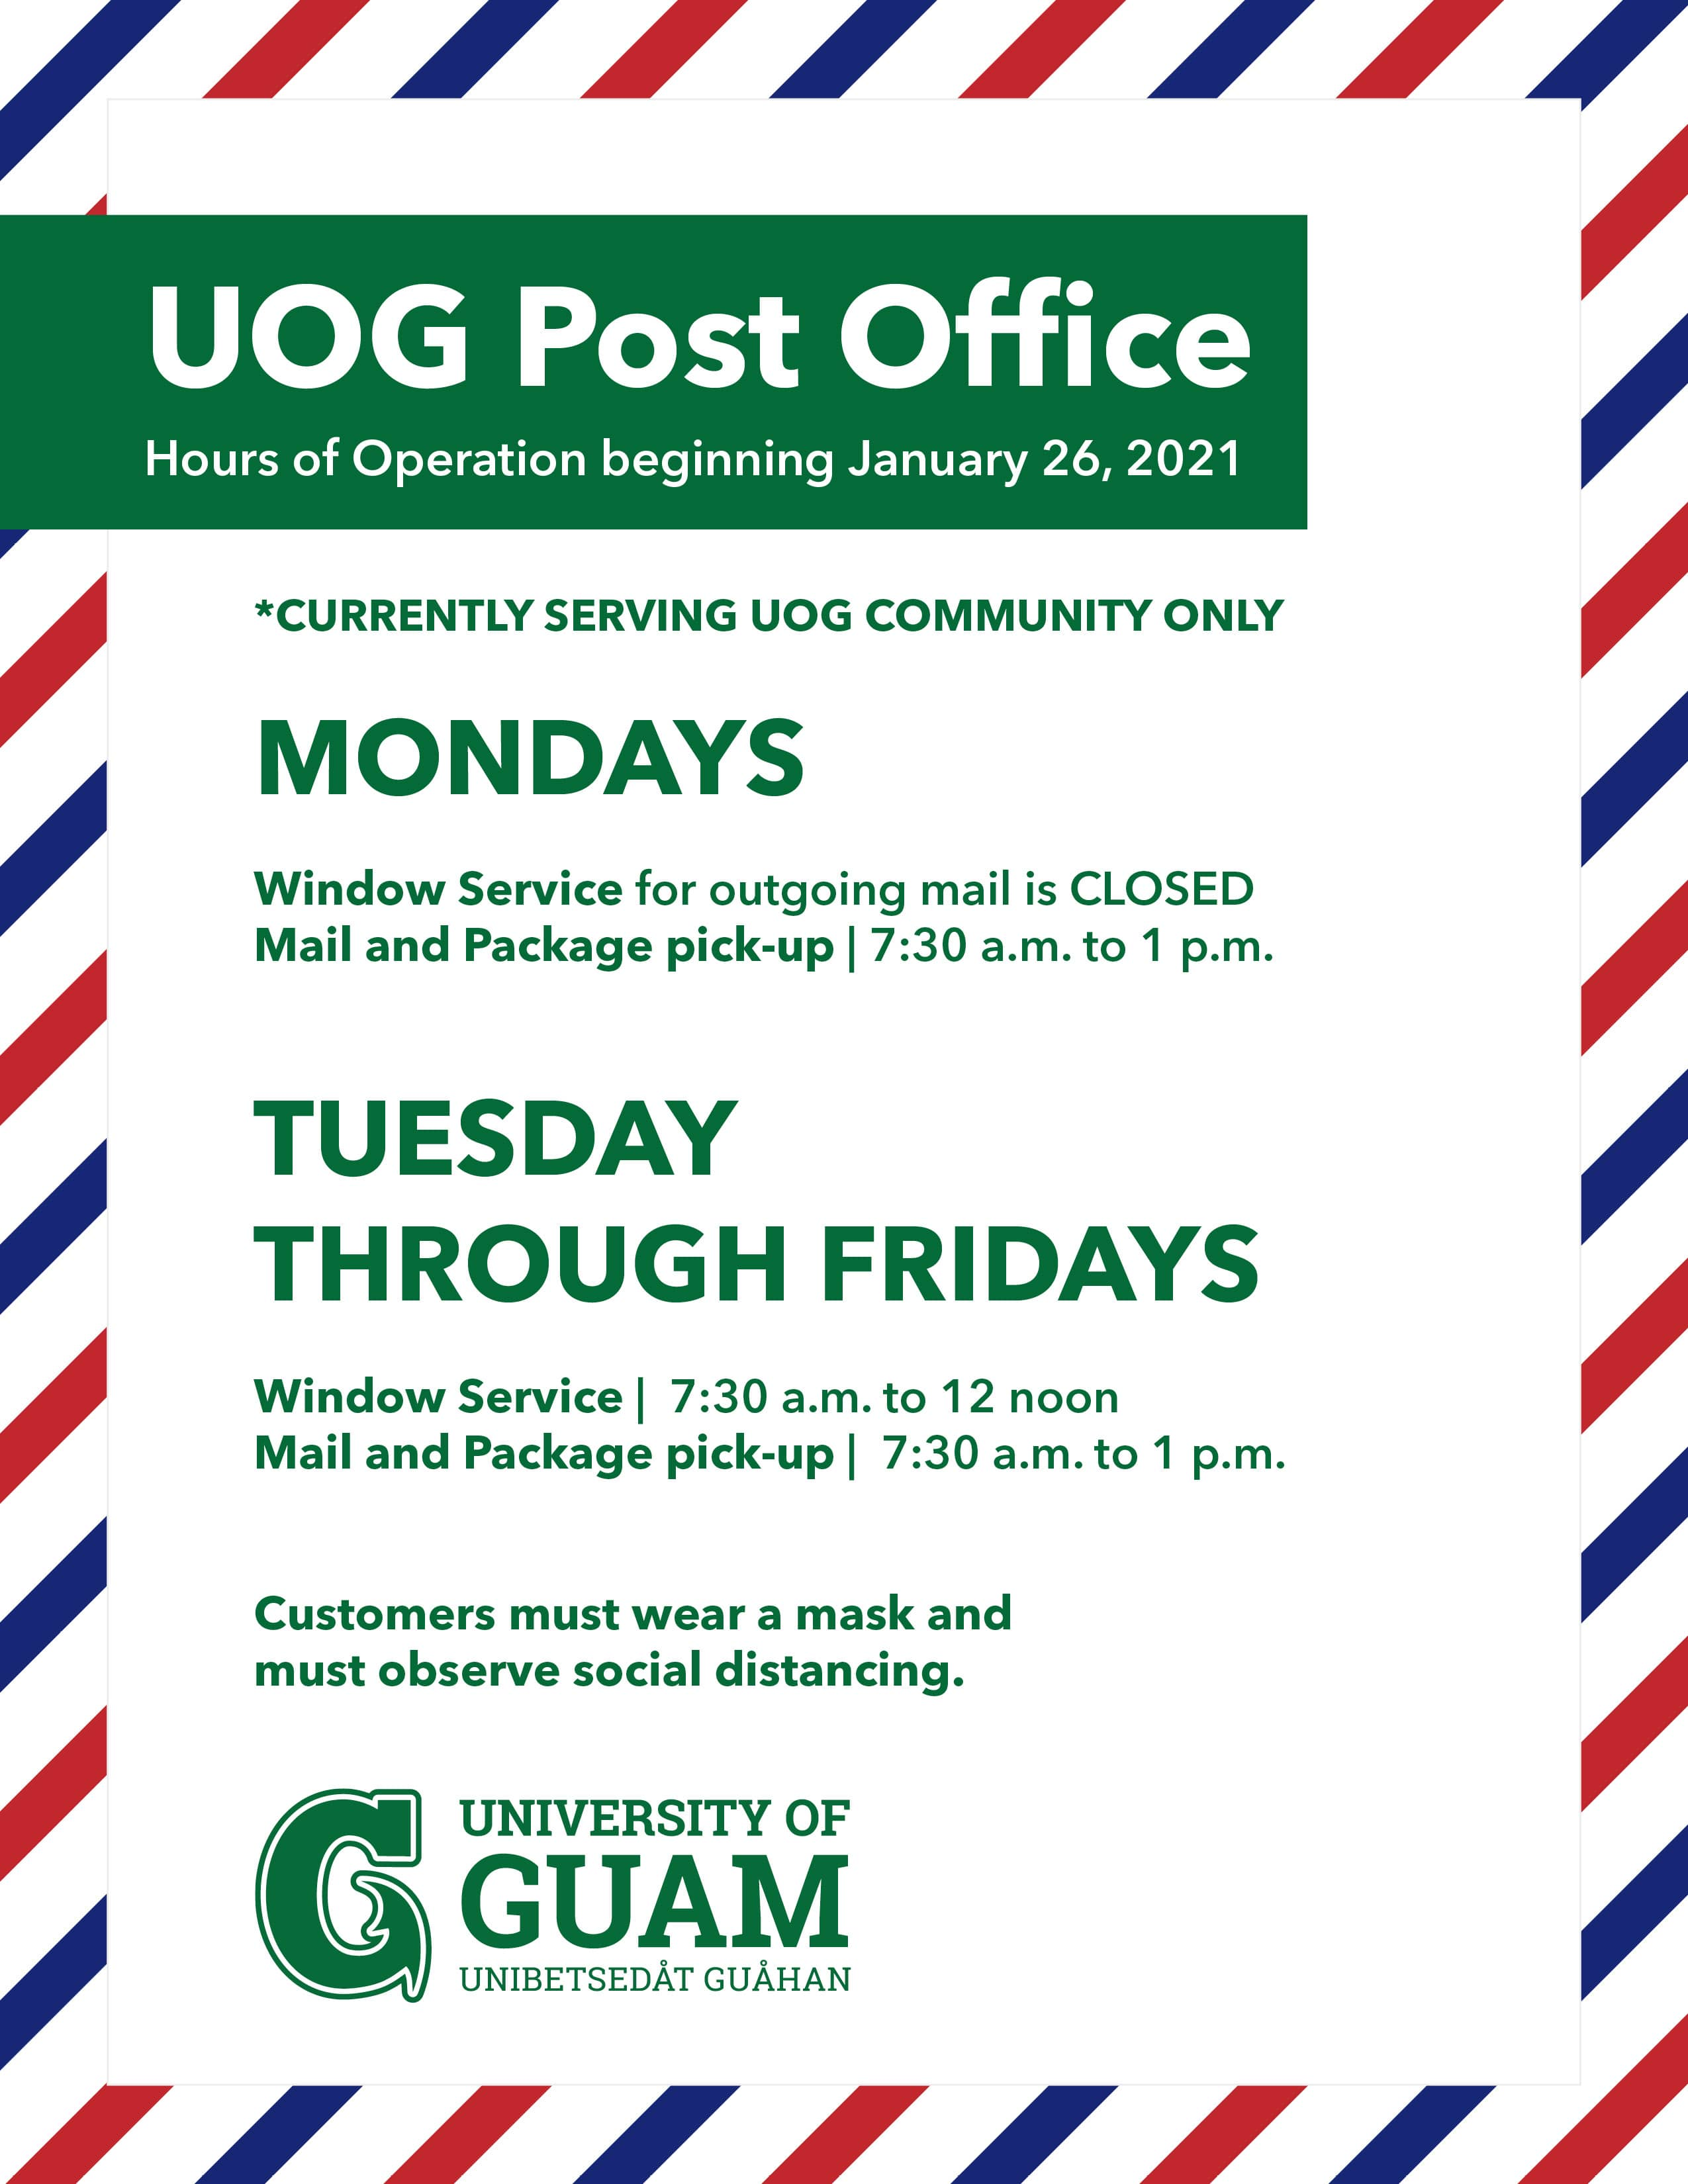 Post Office hours flyer. See text above for content.